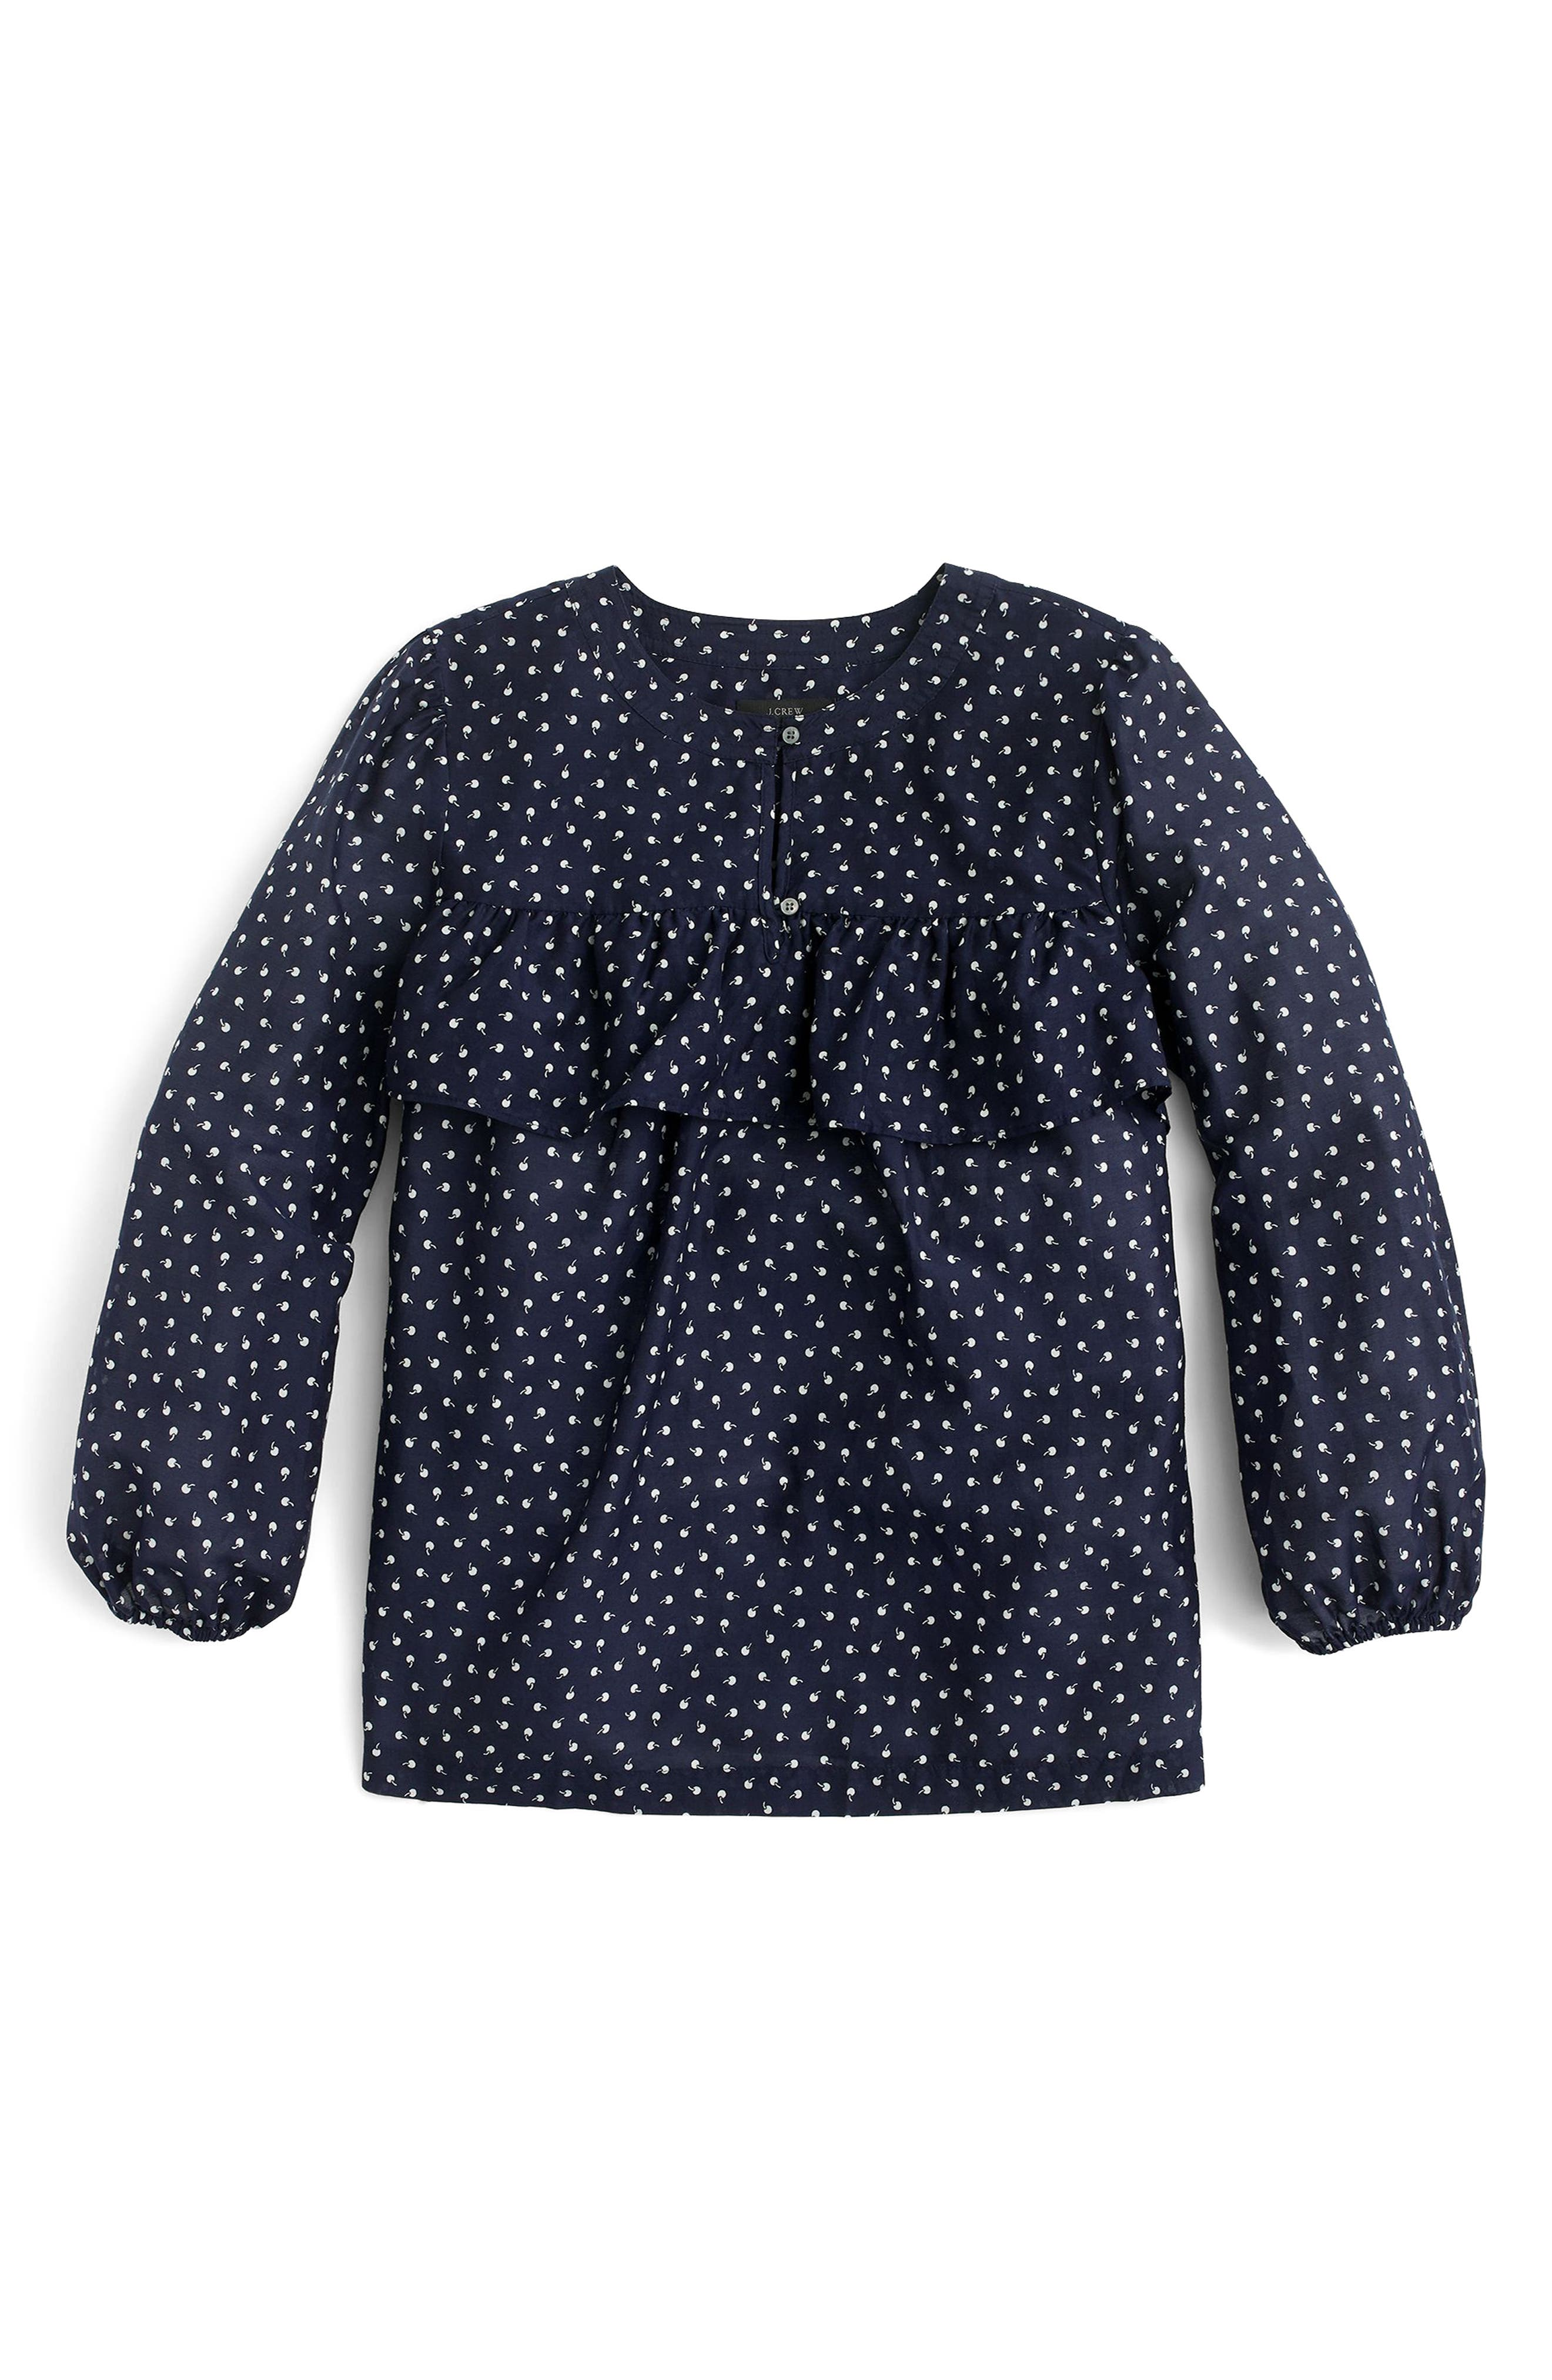 J. Crew Cherry Print Ruffle Top,                         Main,                         color, 010